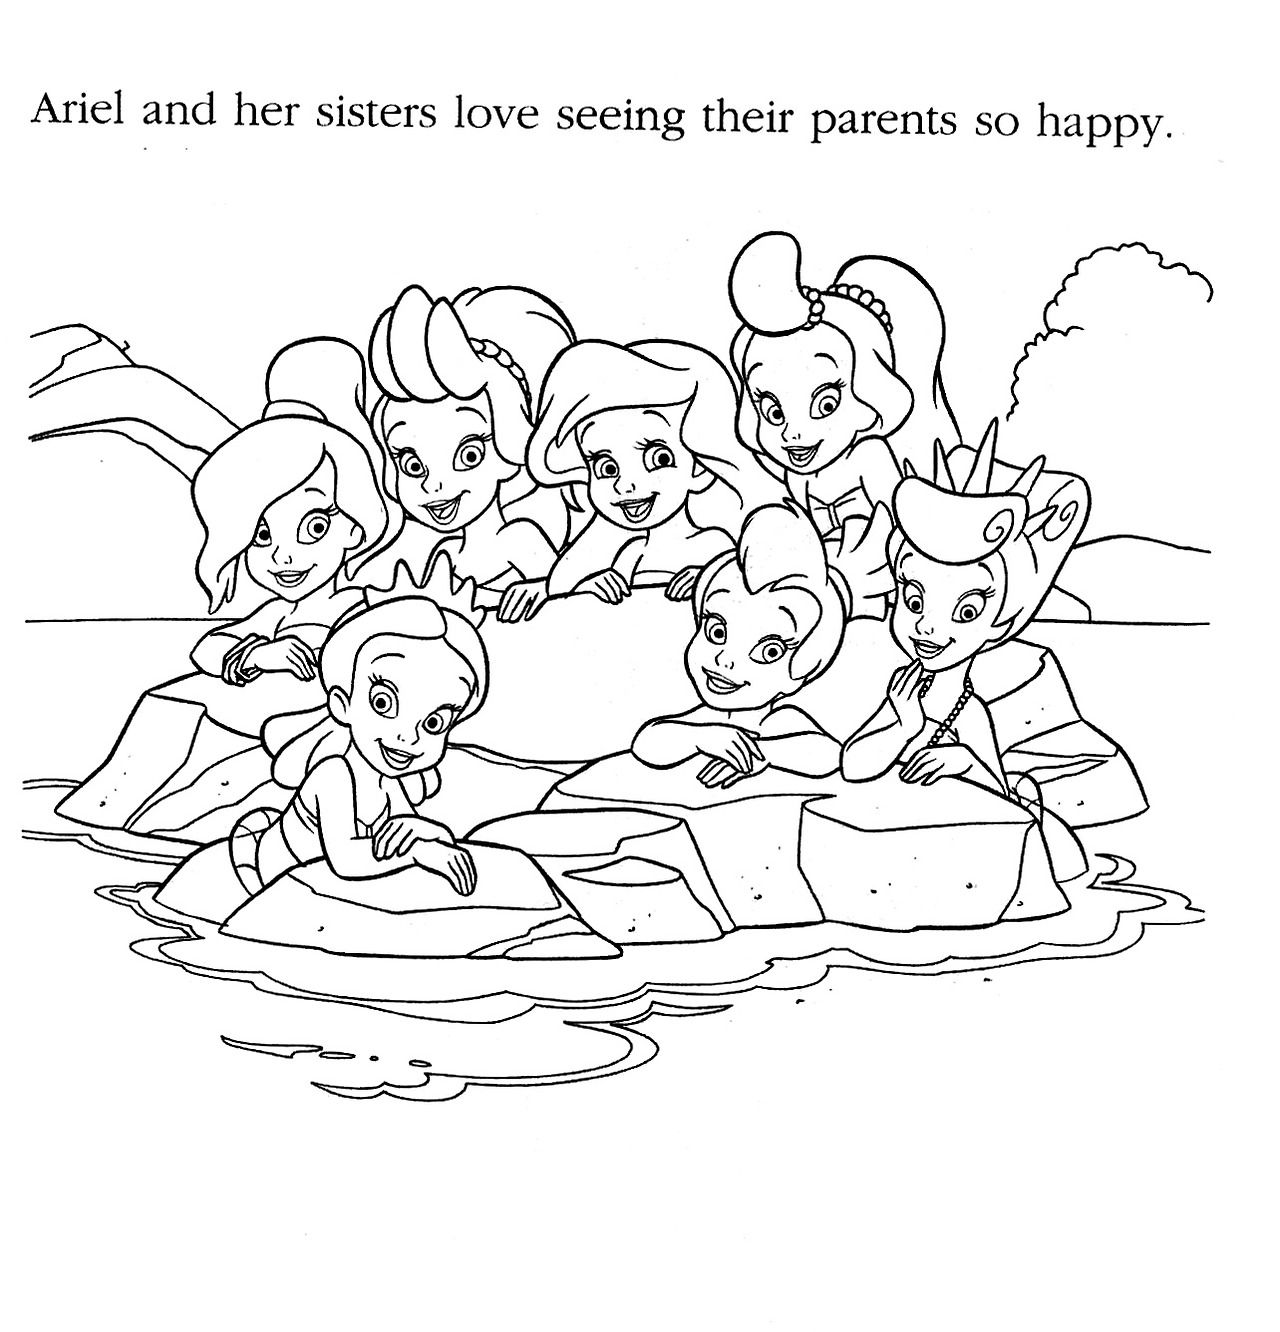 Disney Coloring Pages Mermaid Coloring Pages Mermaid Coloring Disney Coloring Pages